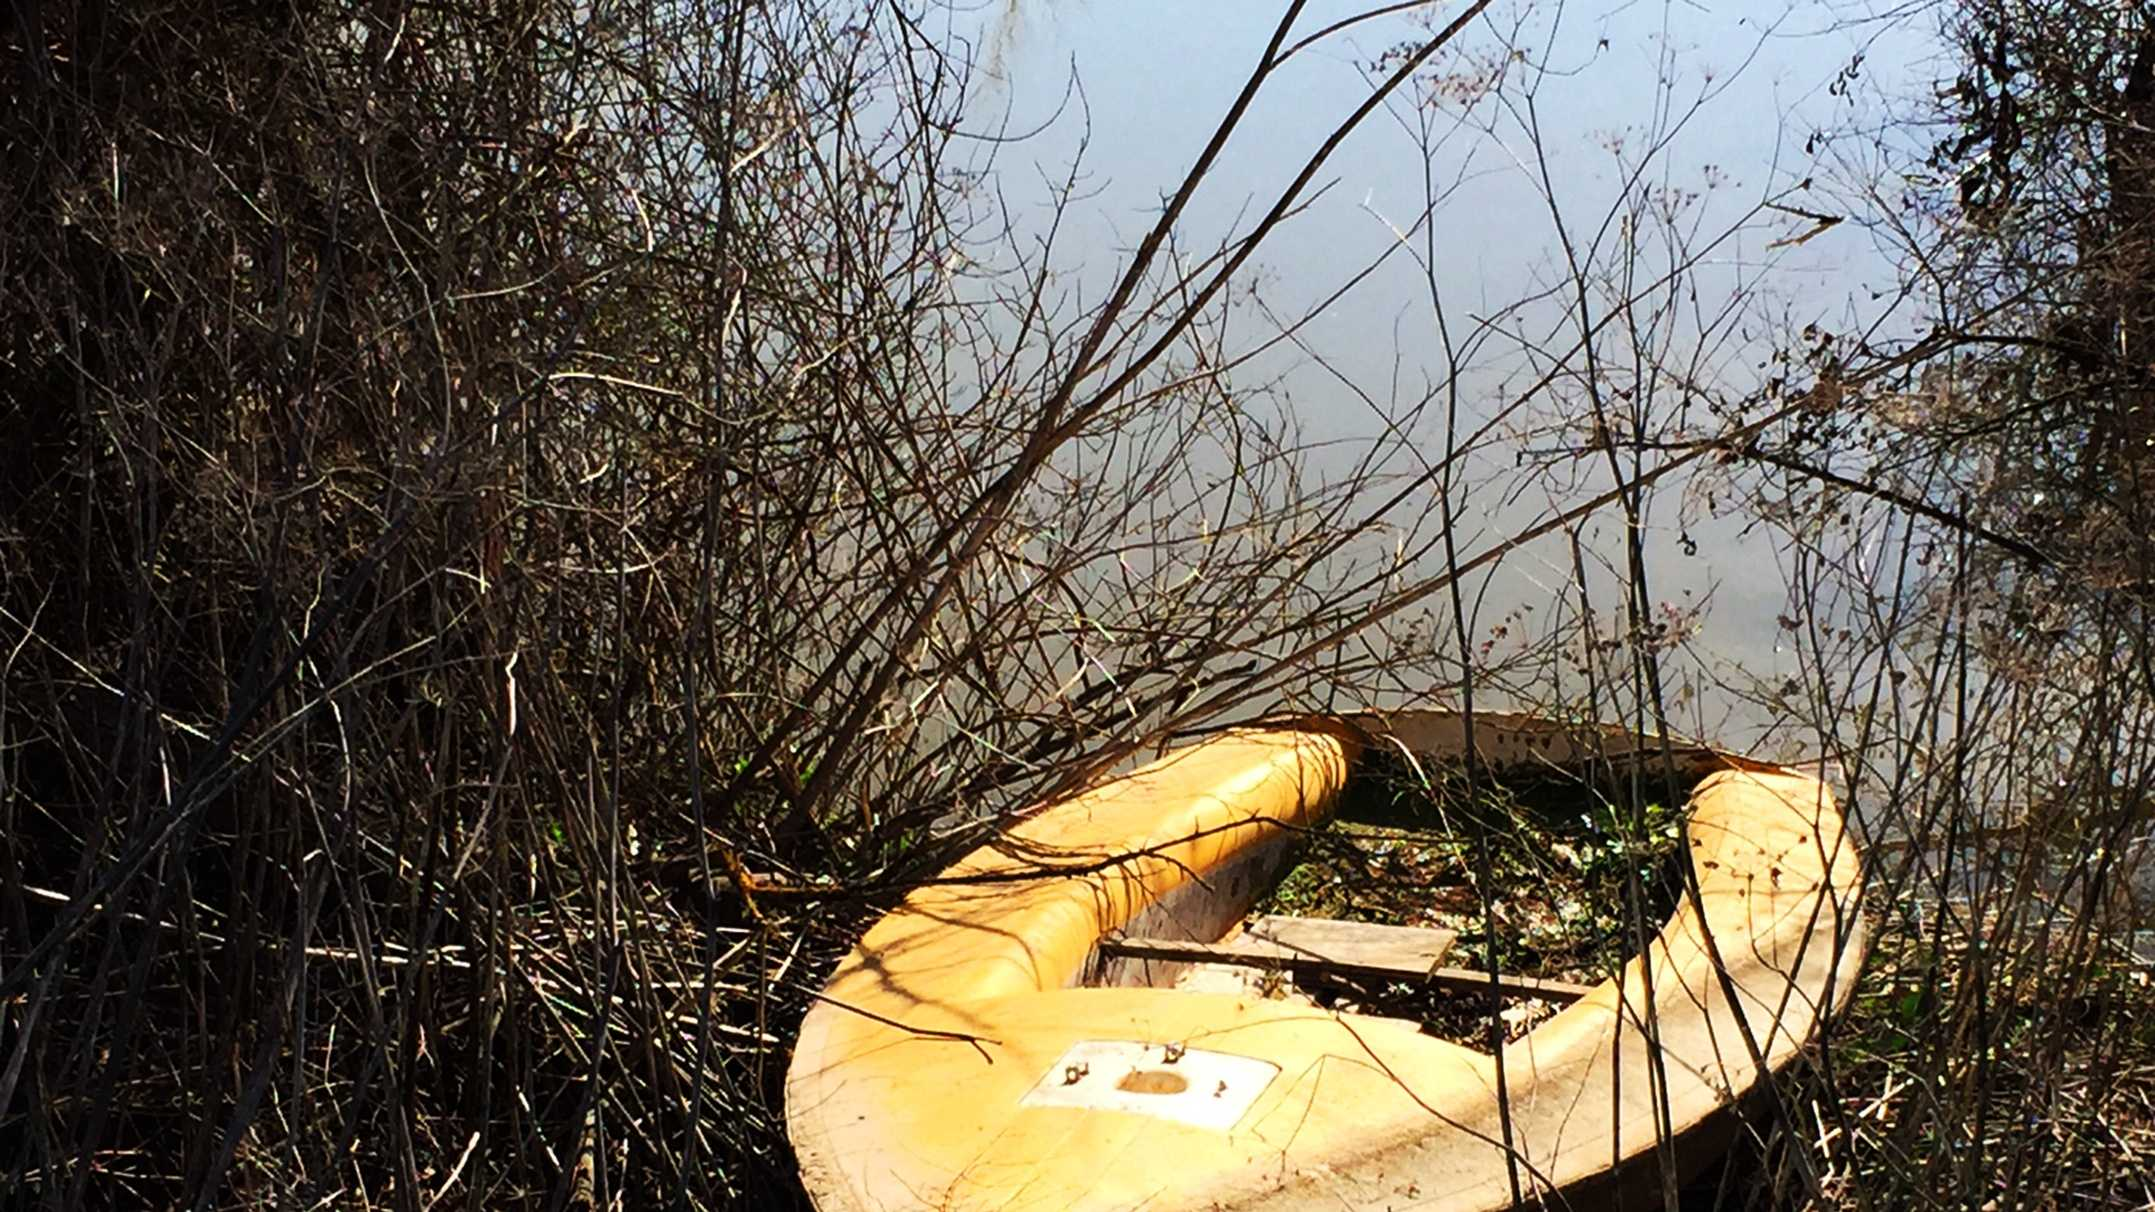 Several old boats, tires, and even poison containers were found at the bottom of the Pajaro River during a cleanup on Wednesday.